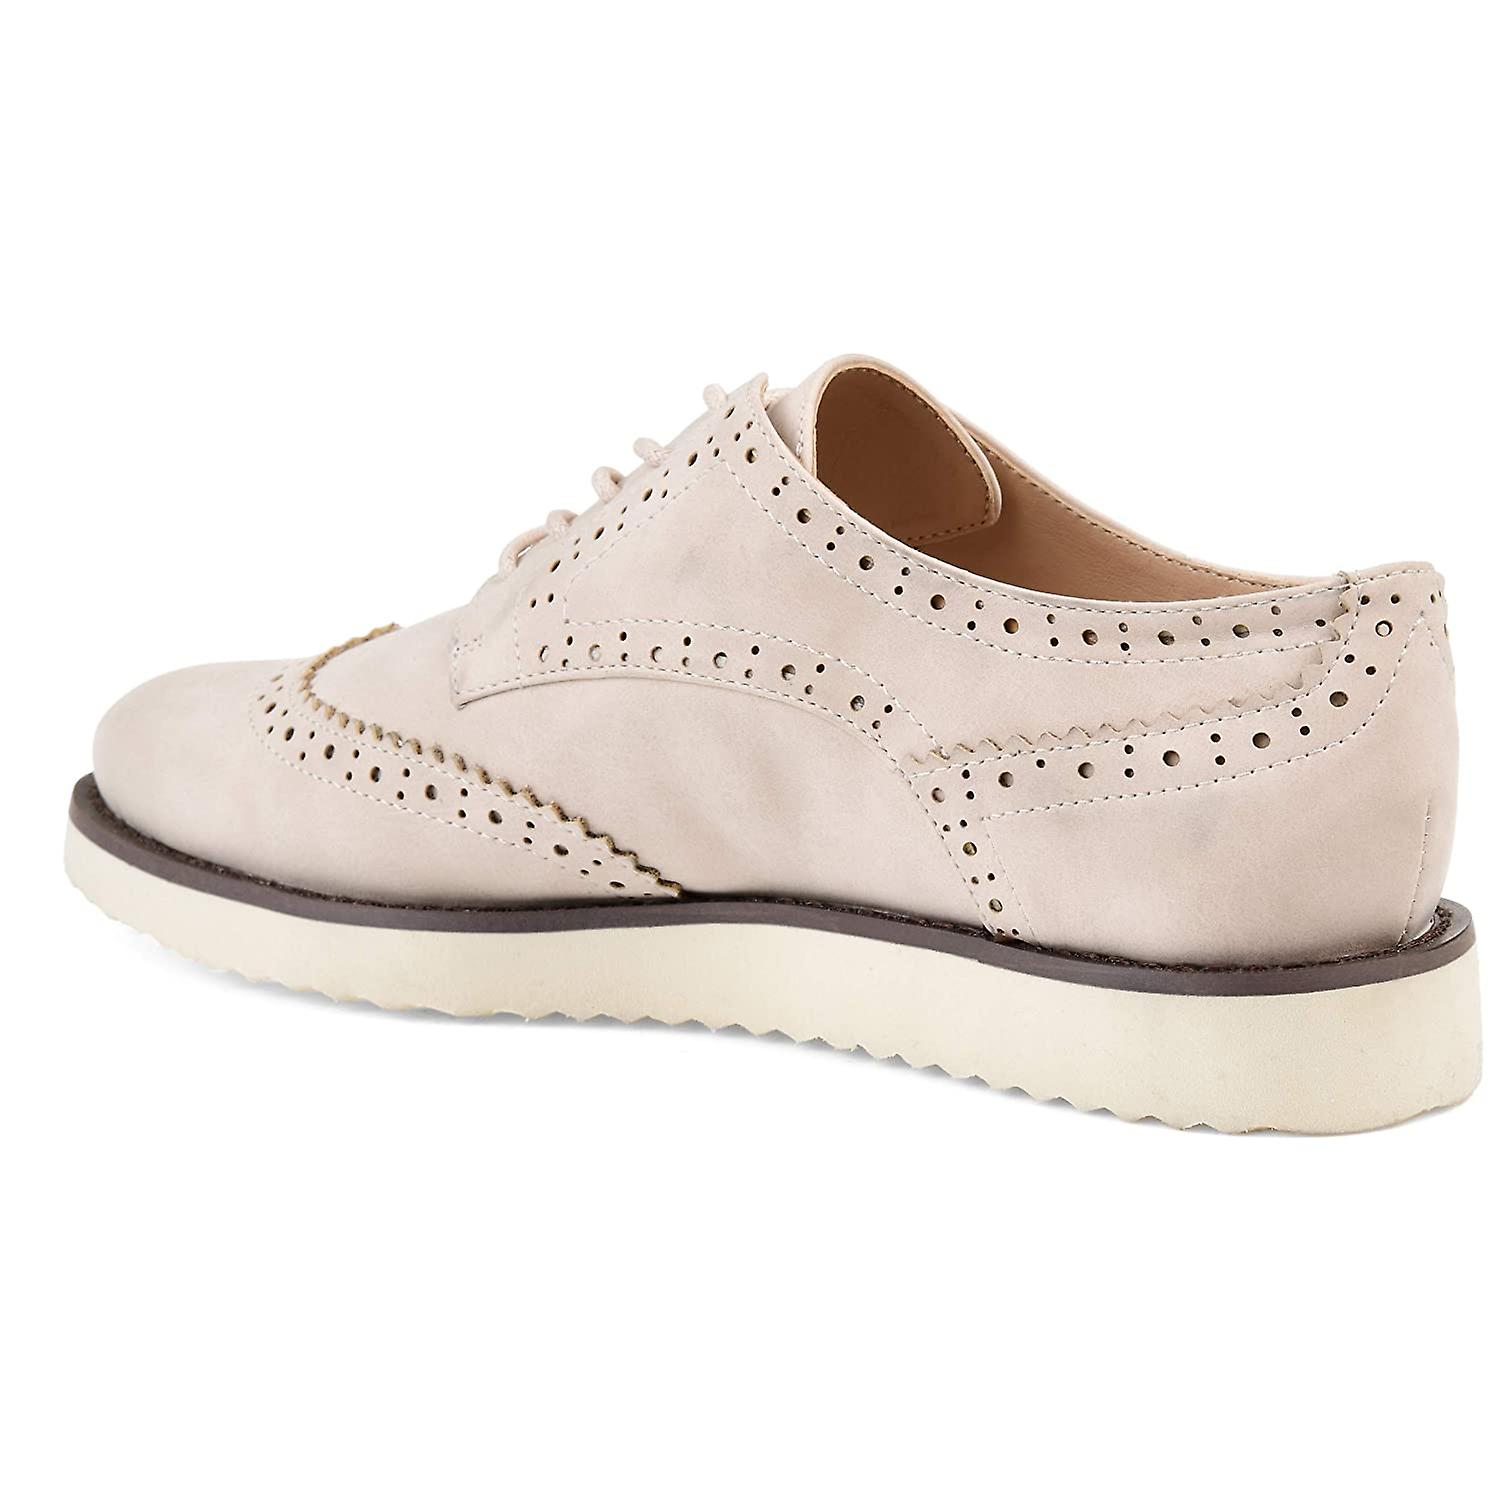 Brinley Co Comfort Womens Wingtip Lace-up Loafer SQY2J